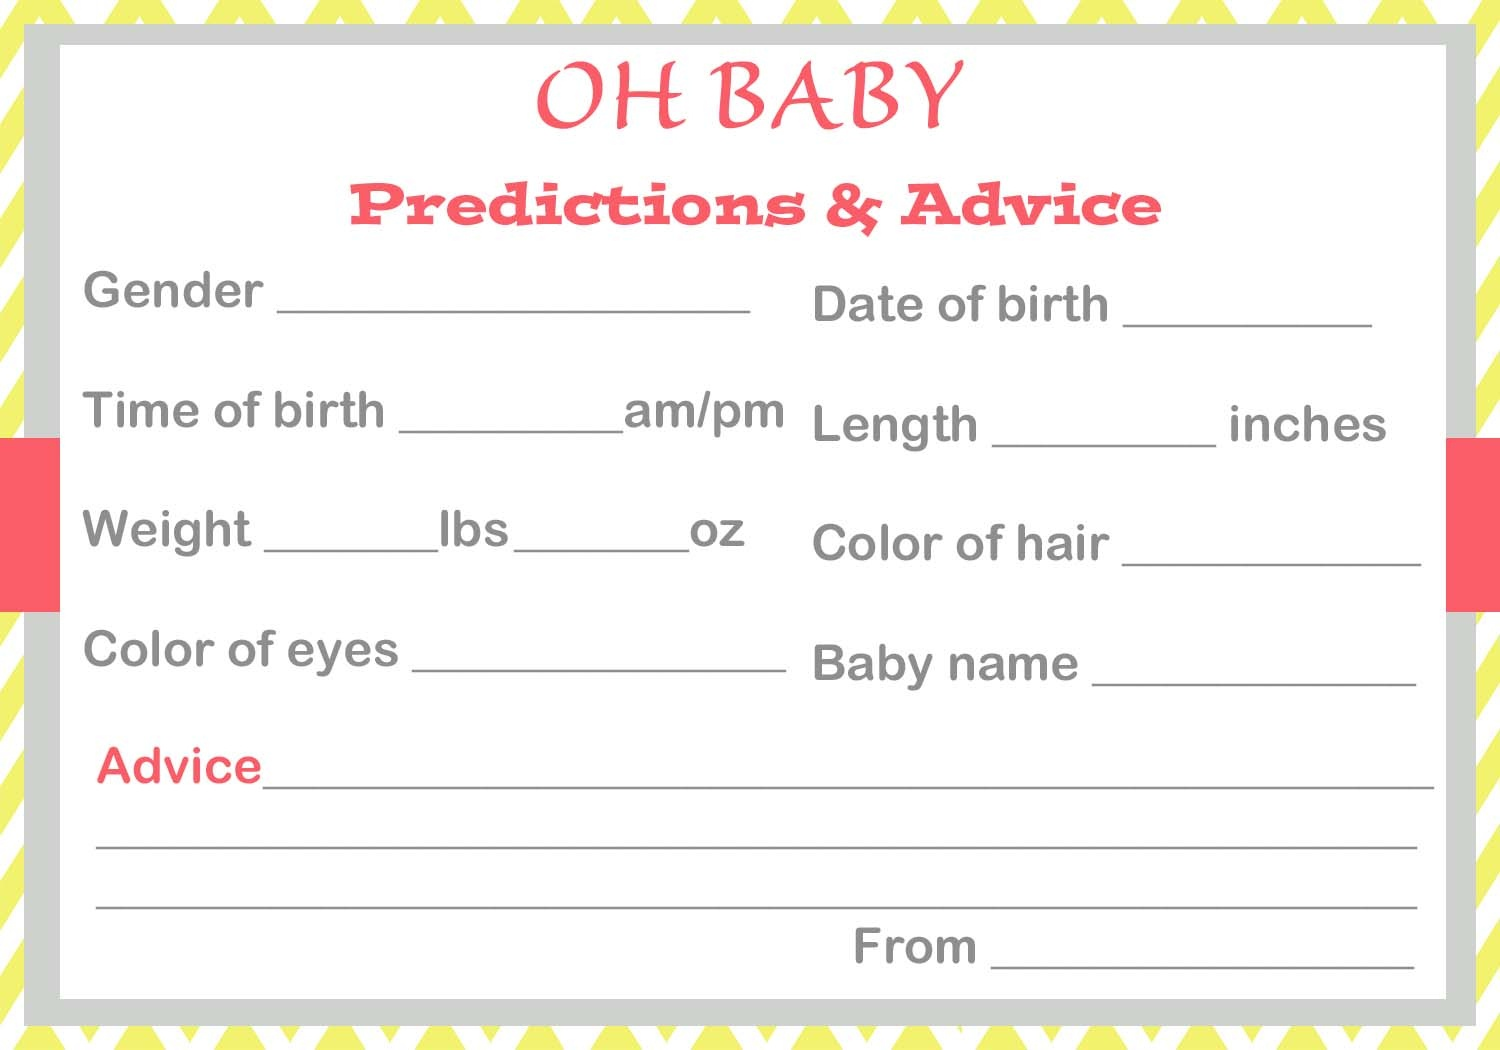 Baby Shower Baby Prediction Cards - Baby Prediction And Advice Cards Free Printable